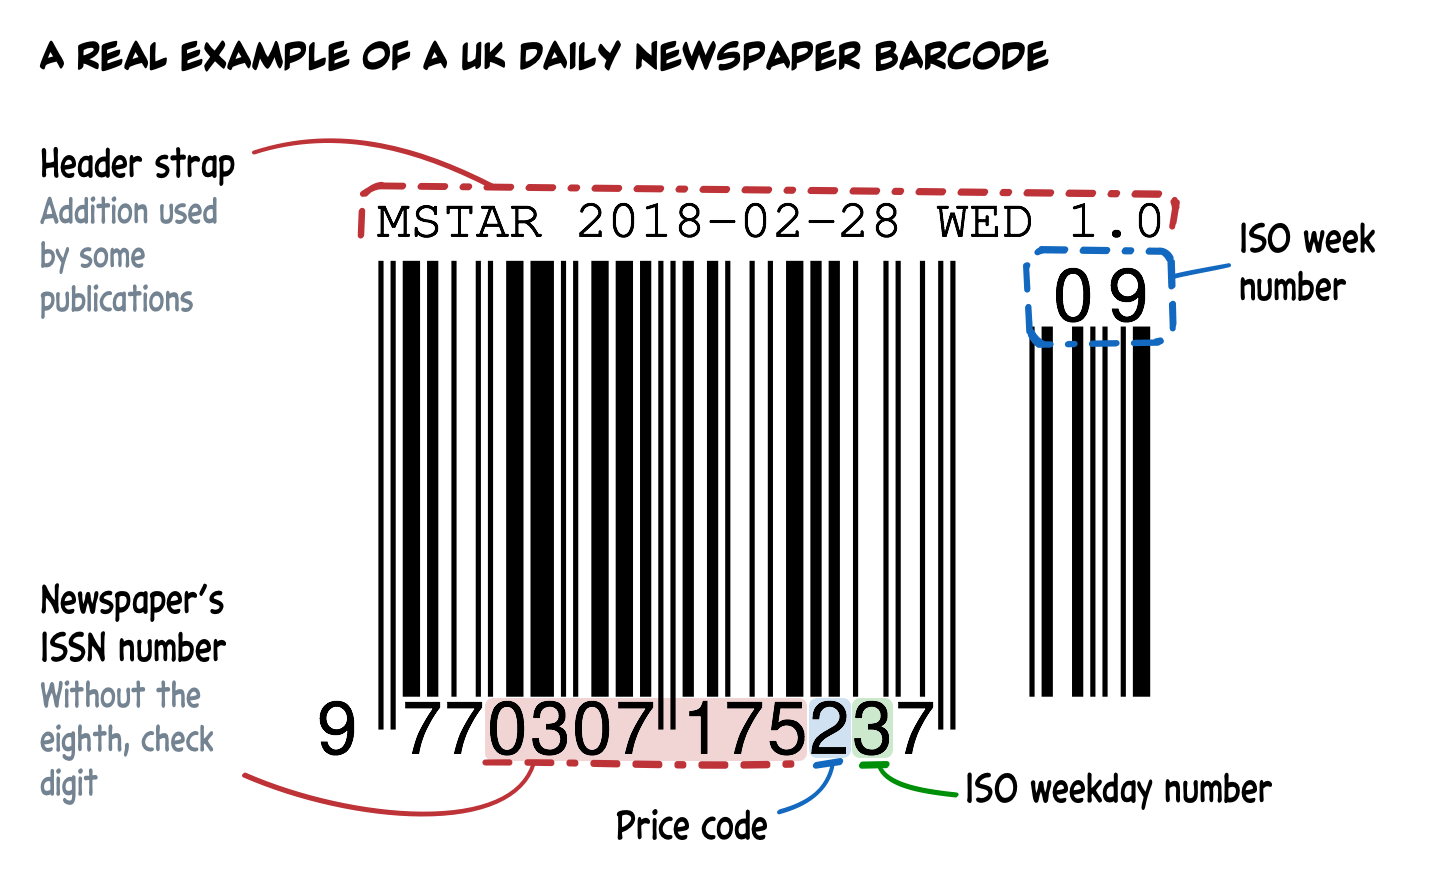 A diagram showing an annotated barcode as used by the Morning Star newspaper.